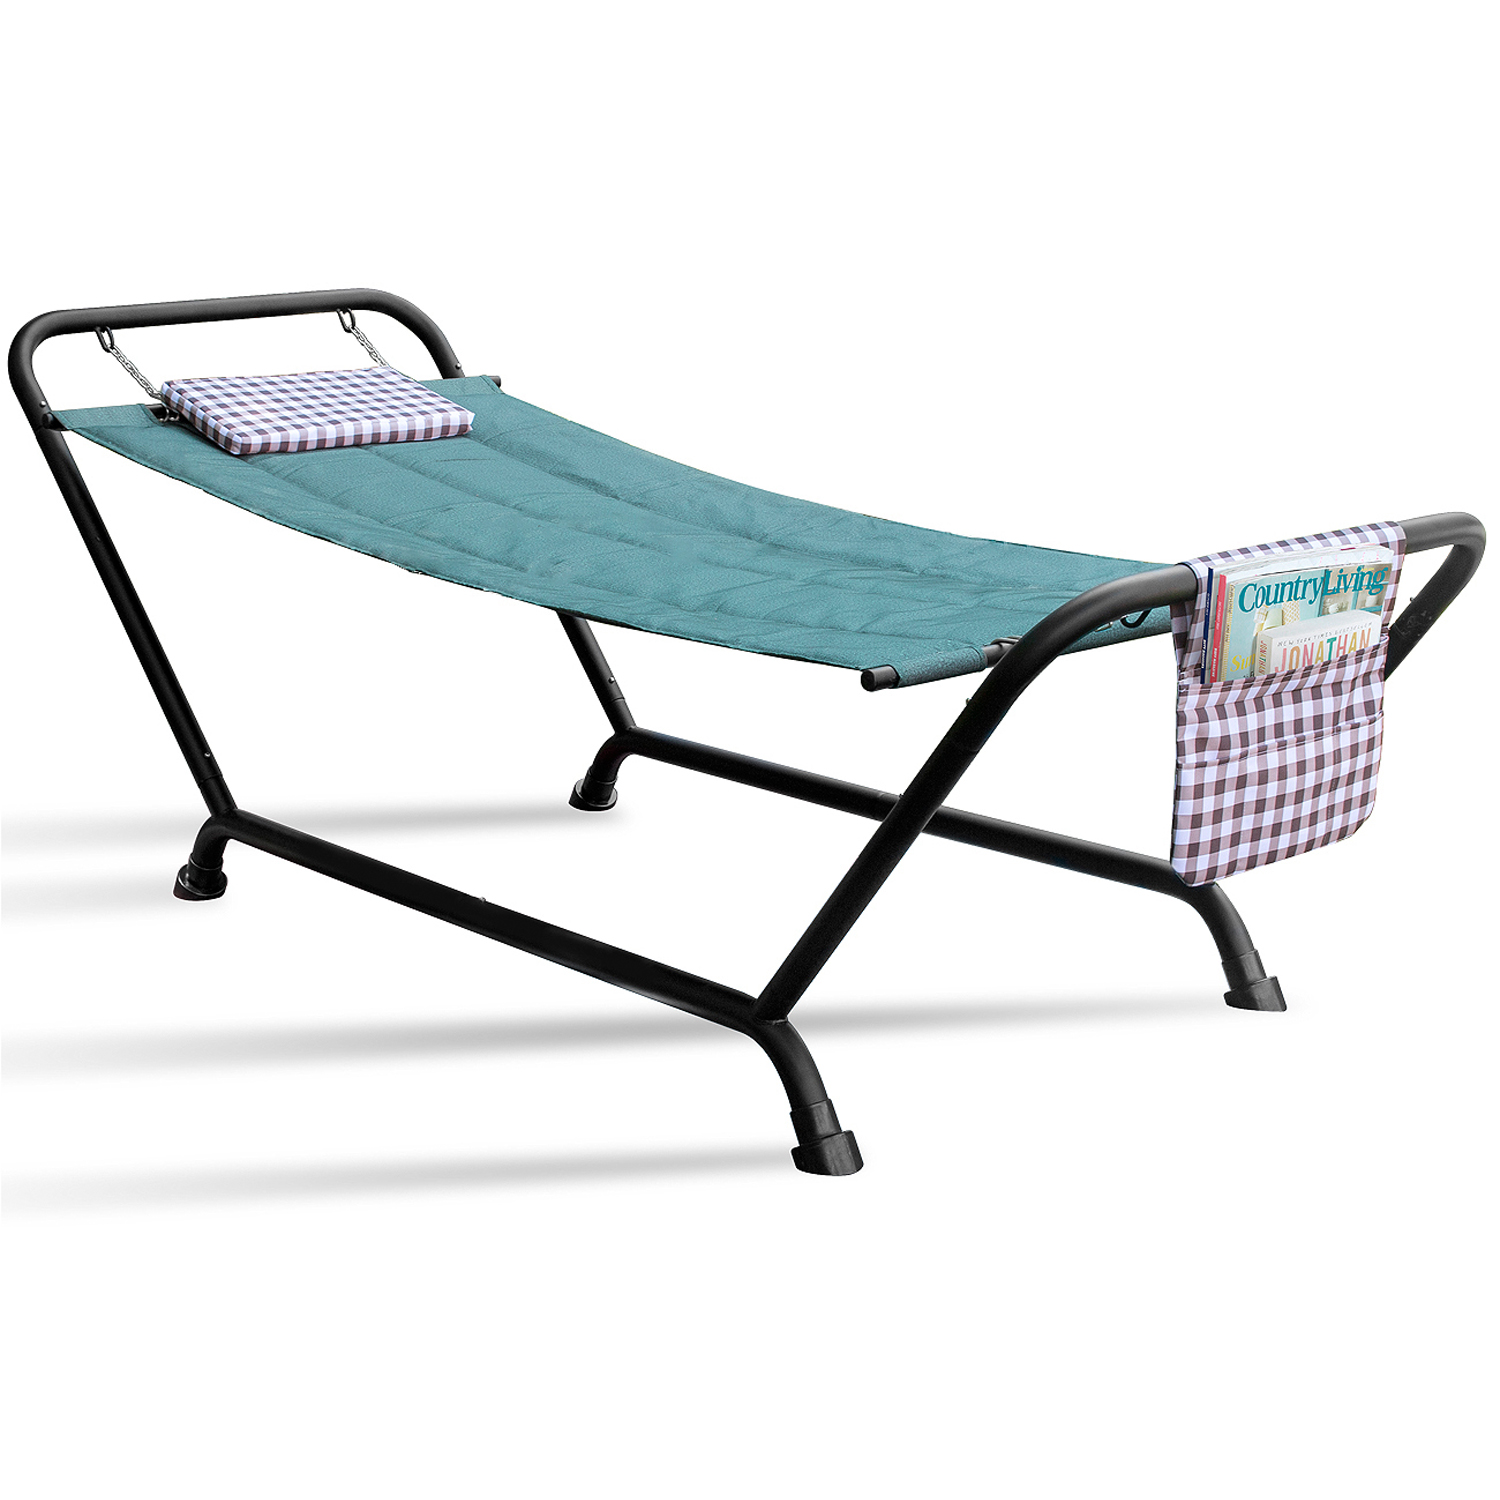 Sorbus Hammock Bed with Stand, Features Deluxe Pillow and Storage Pockets, Heavy Duty, Supports 500 Pounds